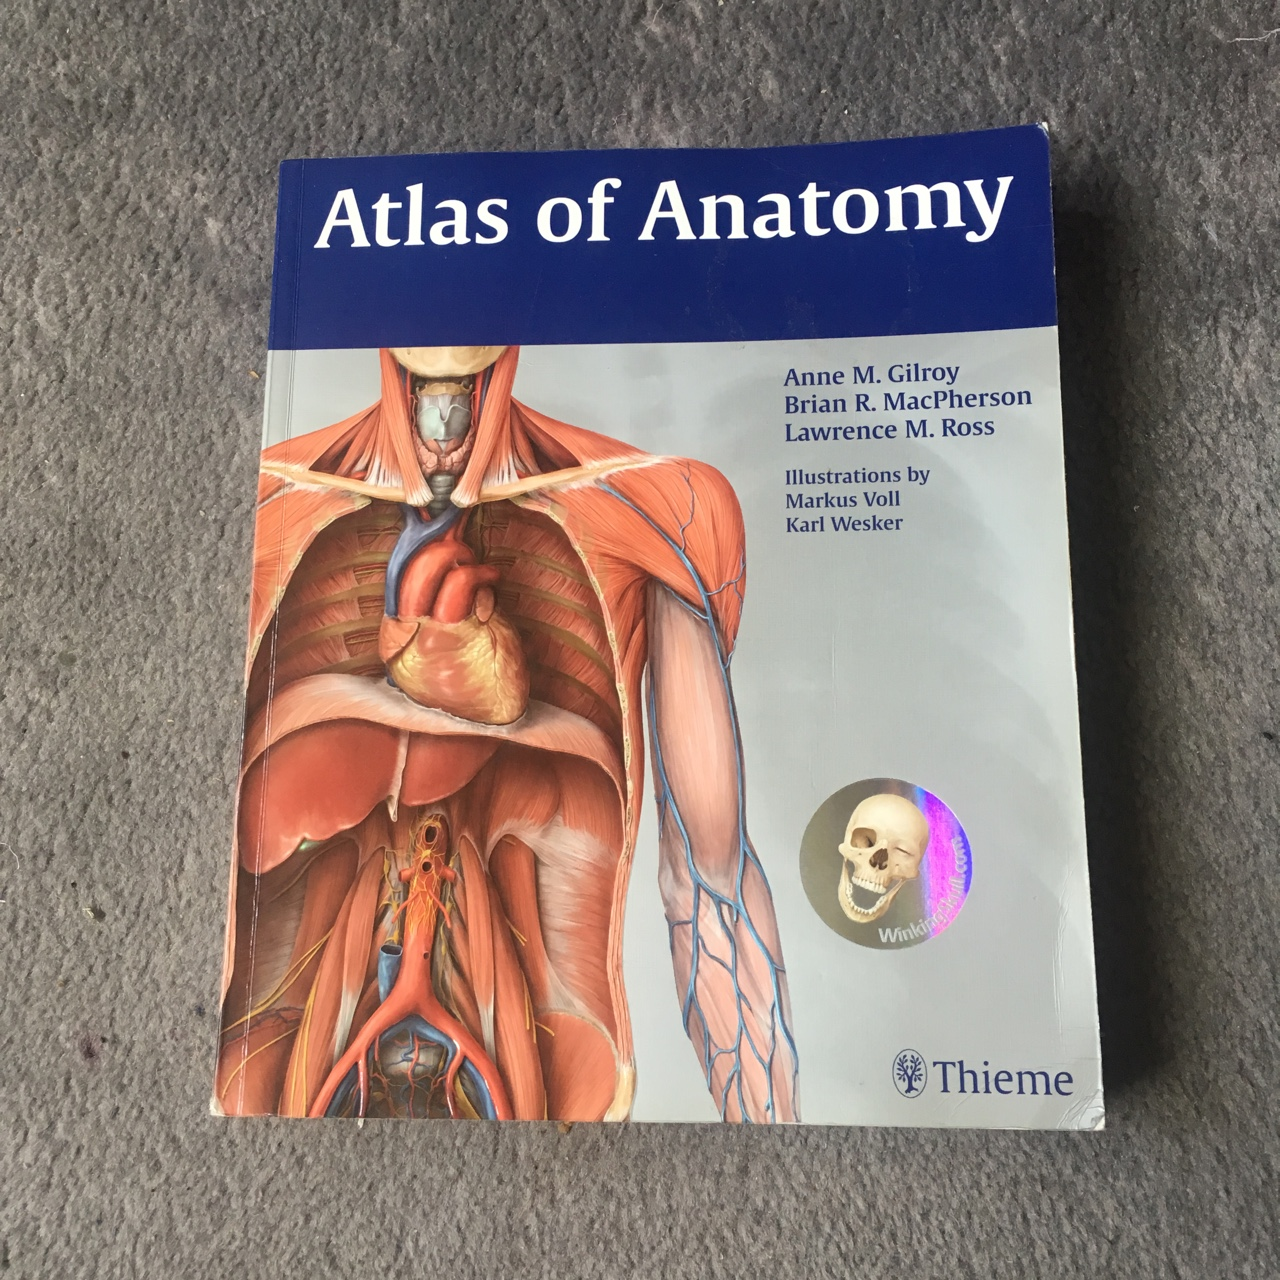 Atlas of Anatomy ❤️ 600 page long, covers the entire